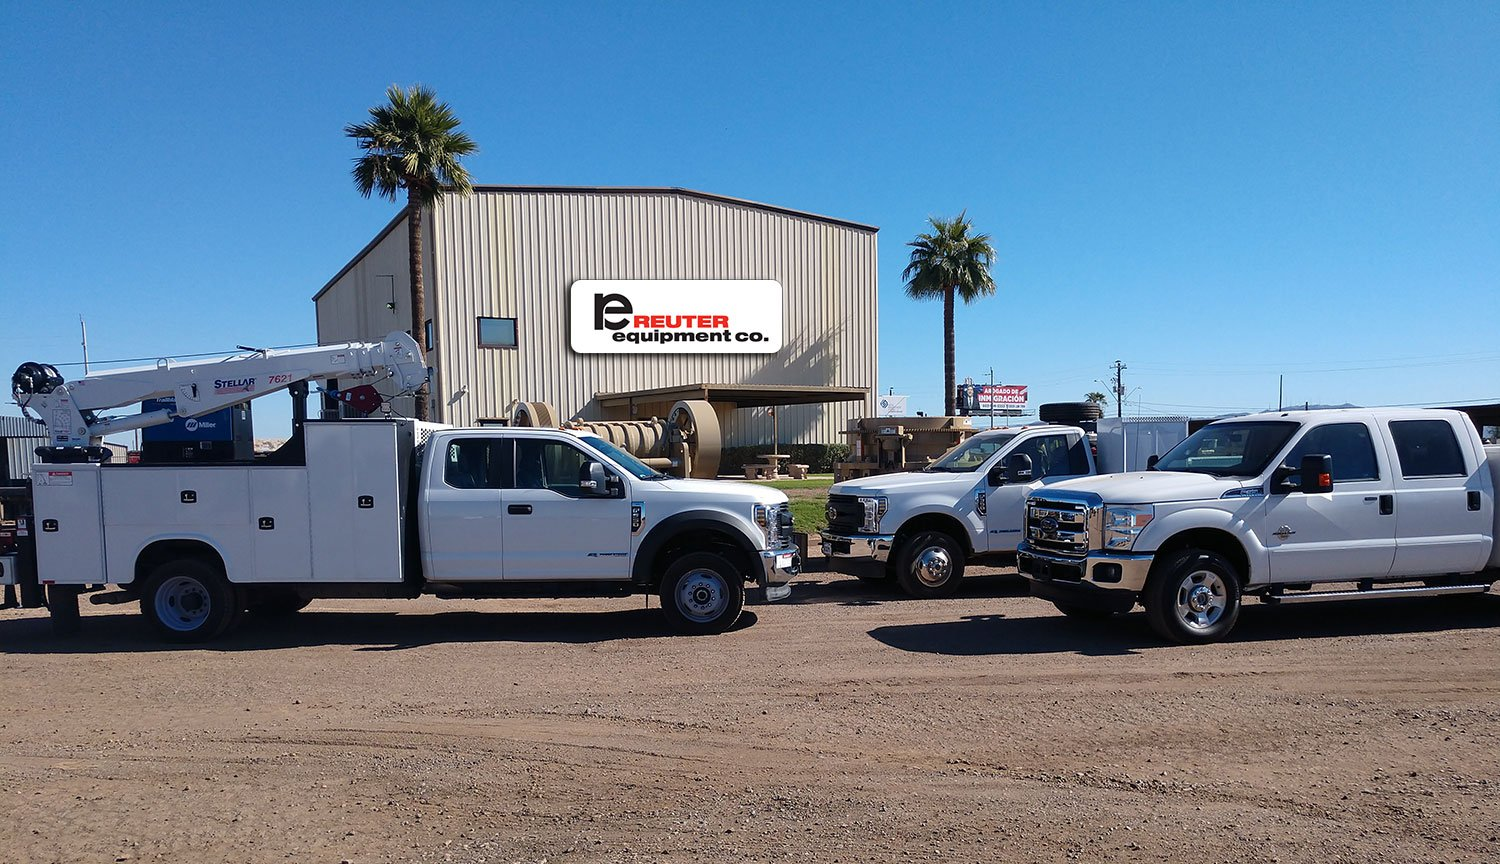 Reuter Equipment Service Trucks